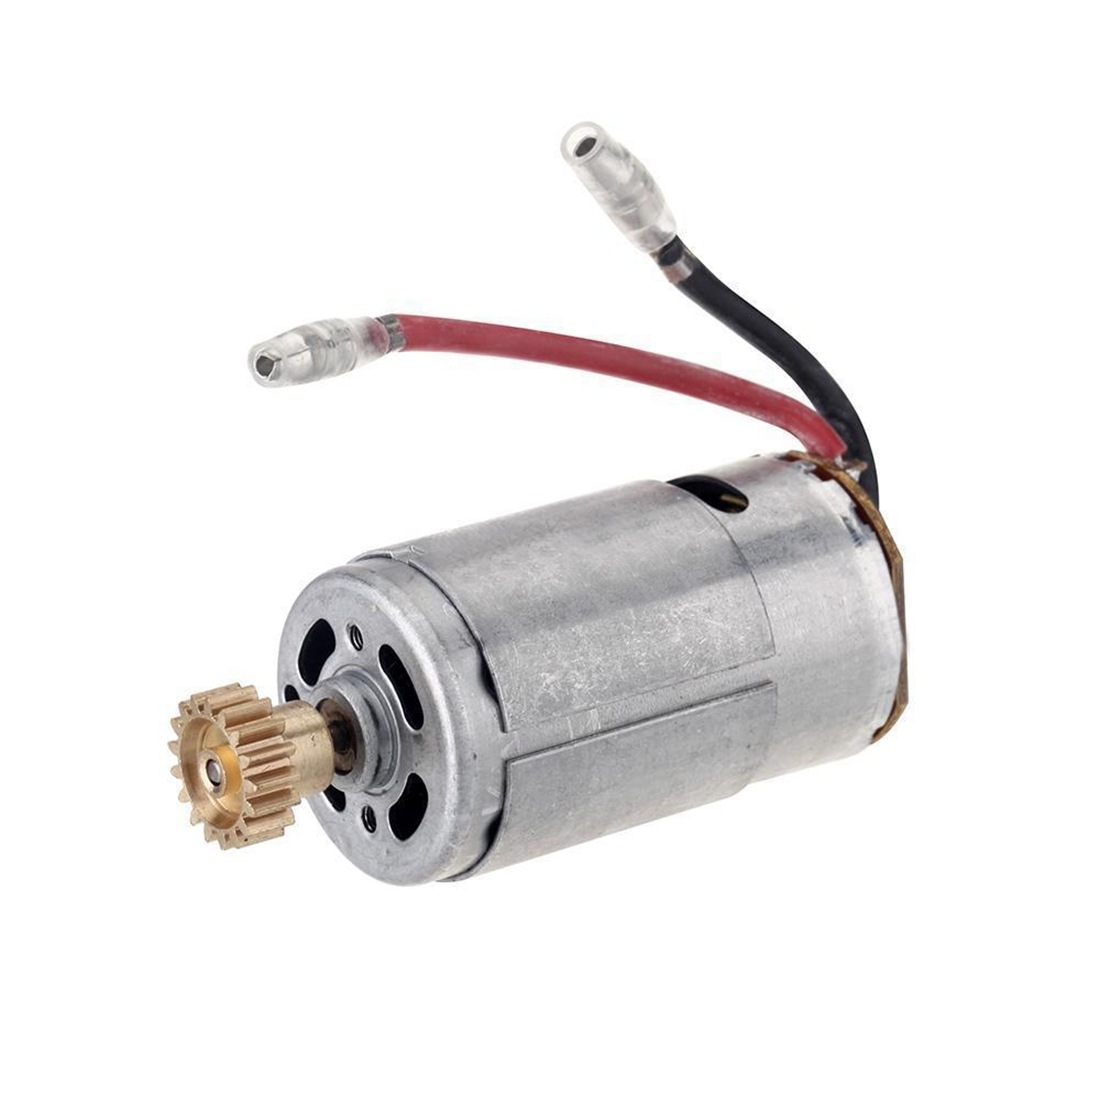 A949 - 32 Motor for Wltoys A949 A959 A969 A979 RC Car